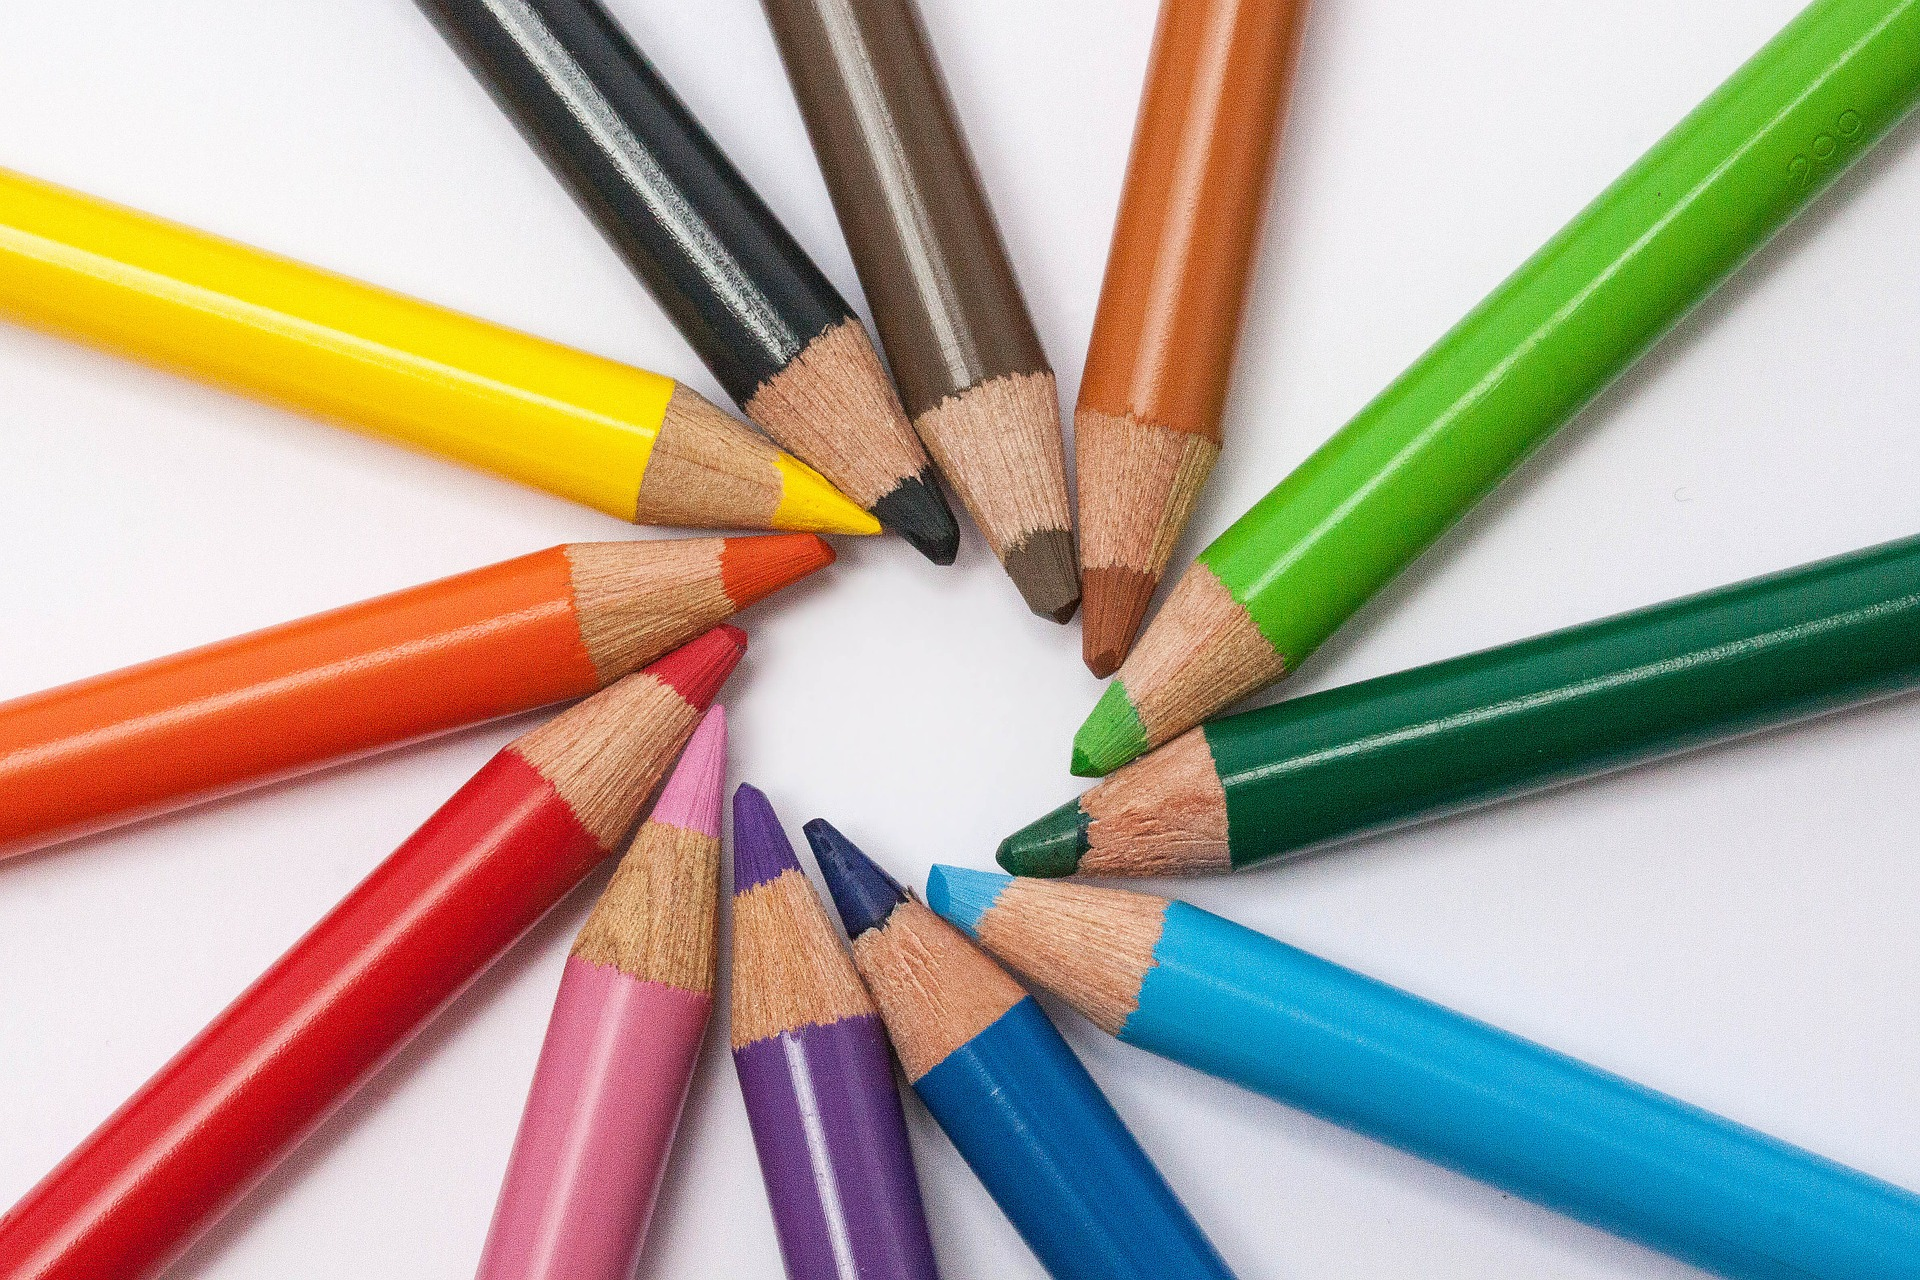 colored pencils create art and content